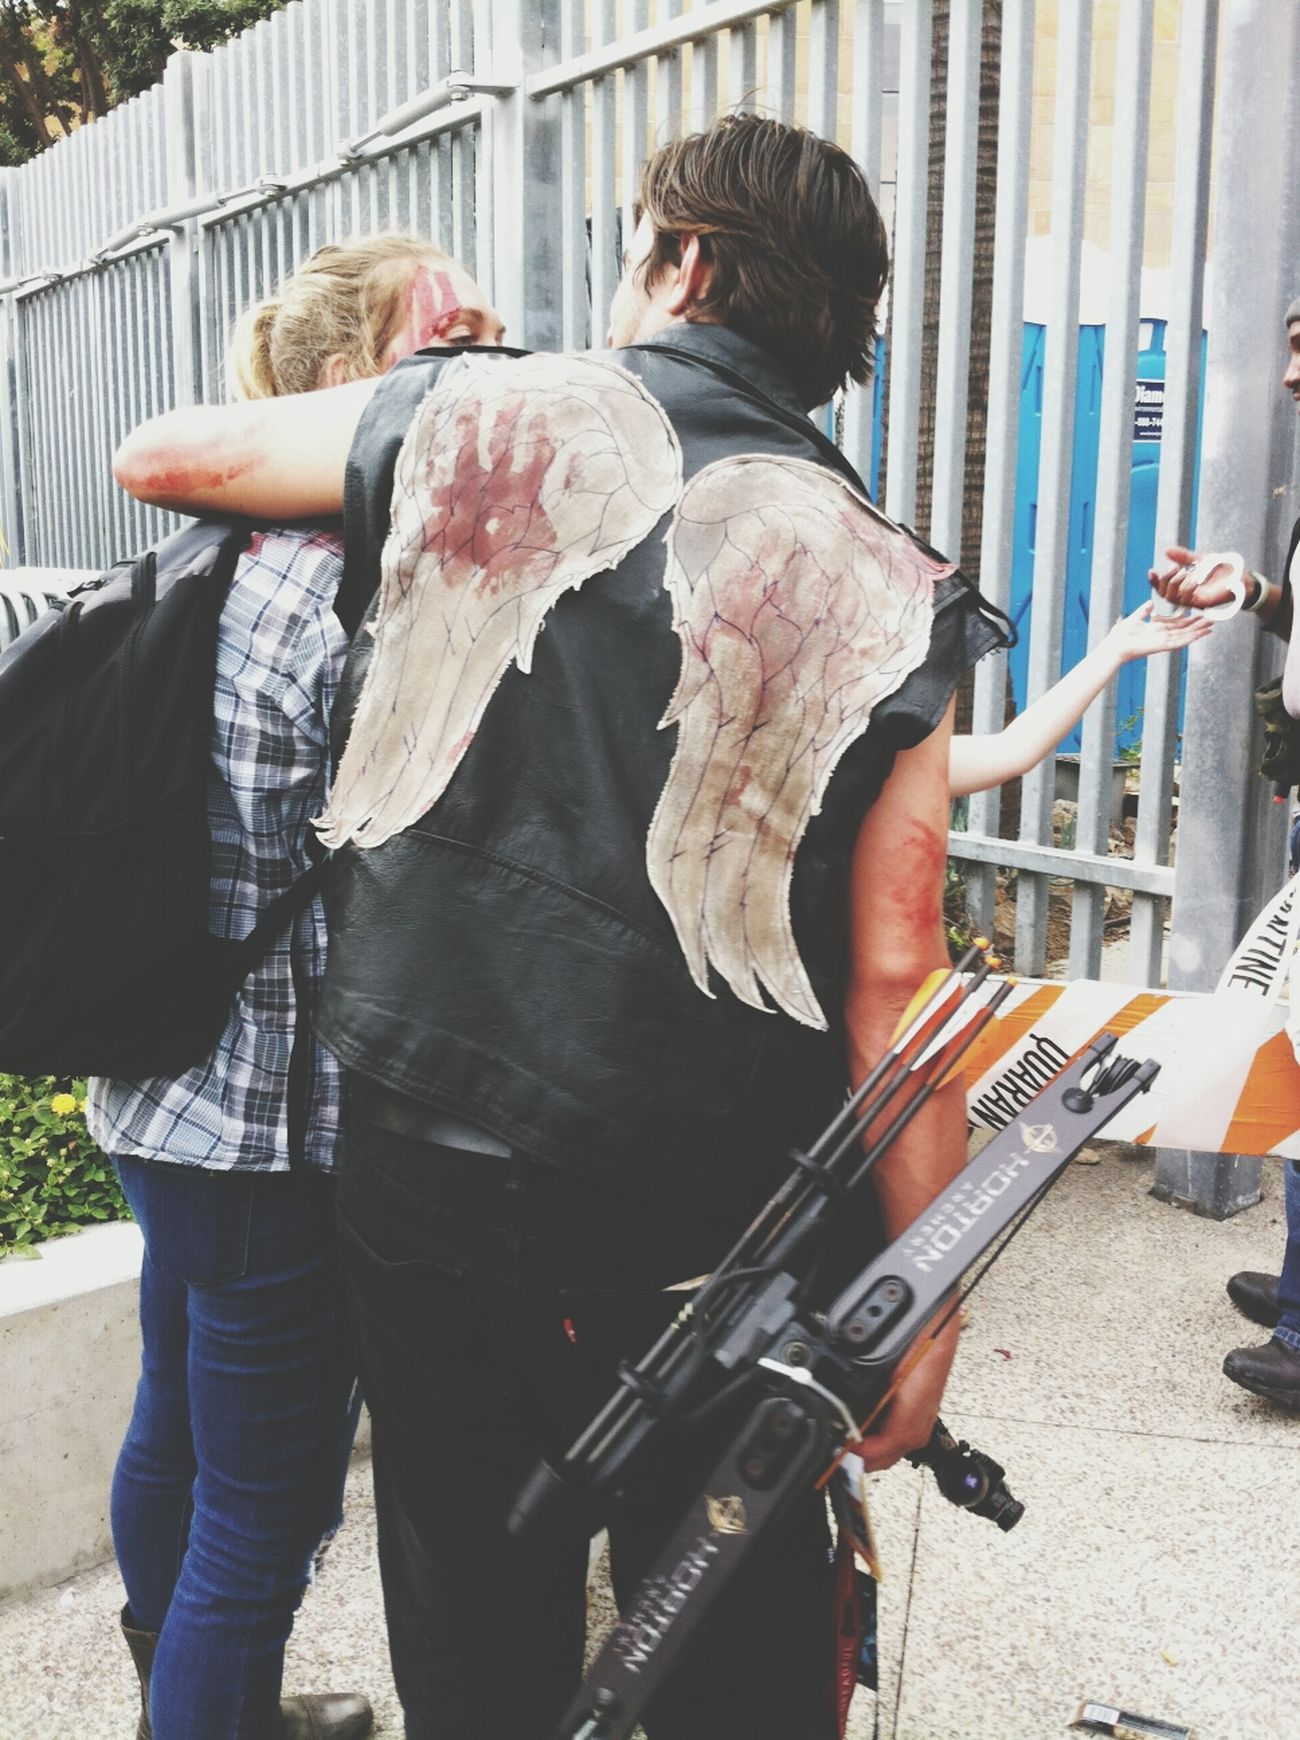 My Boyfriend Daryl Dixon was cheating on me Thewalkingdead Street Photography